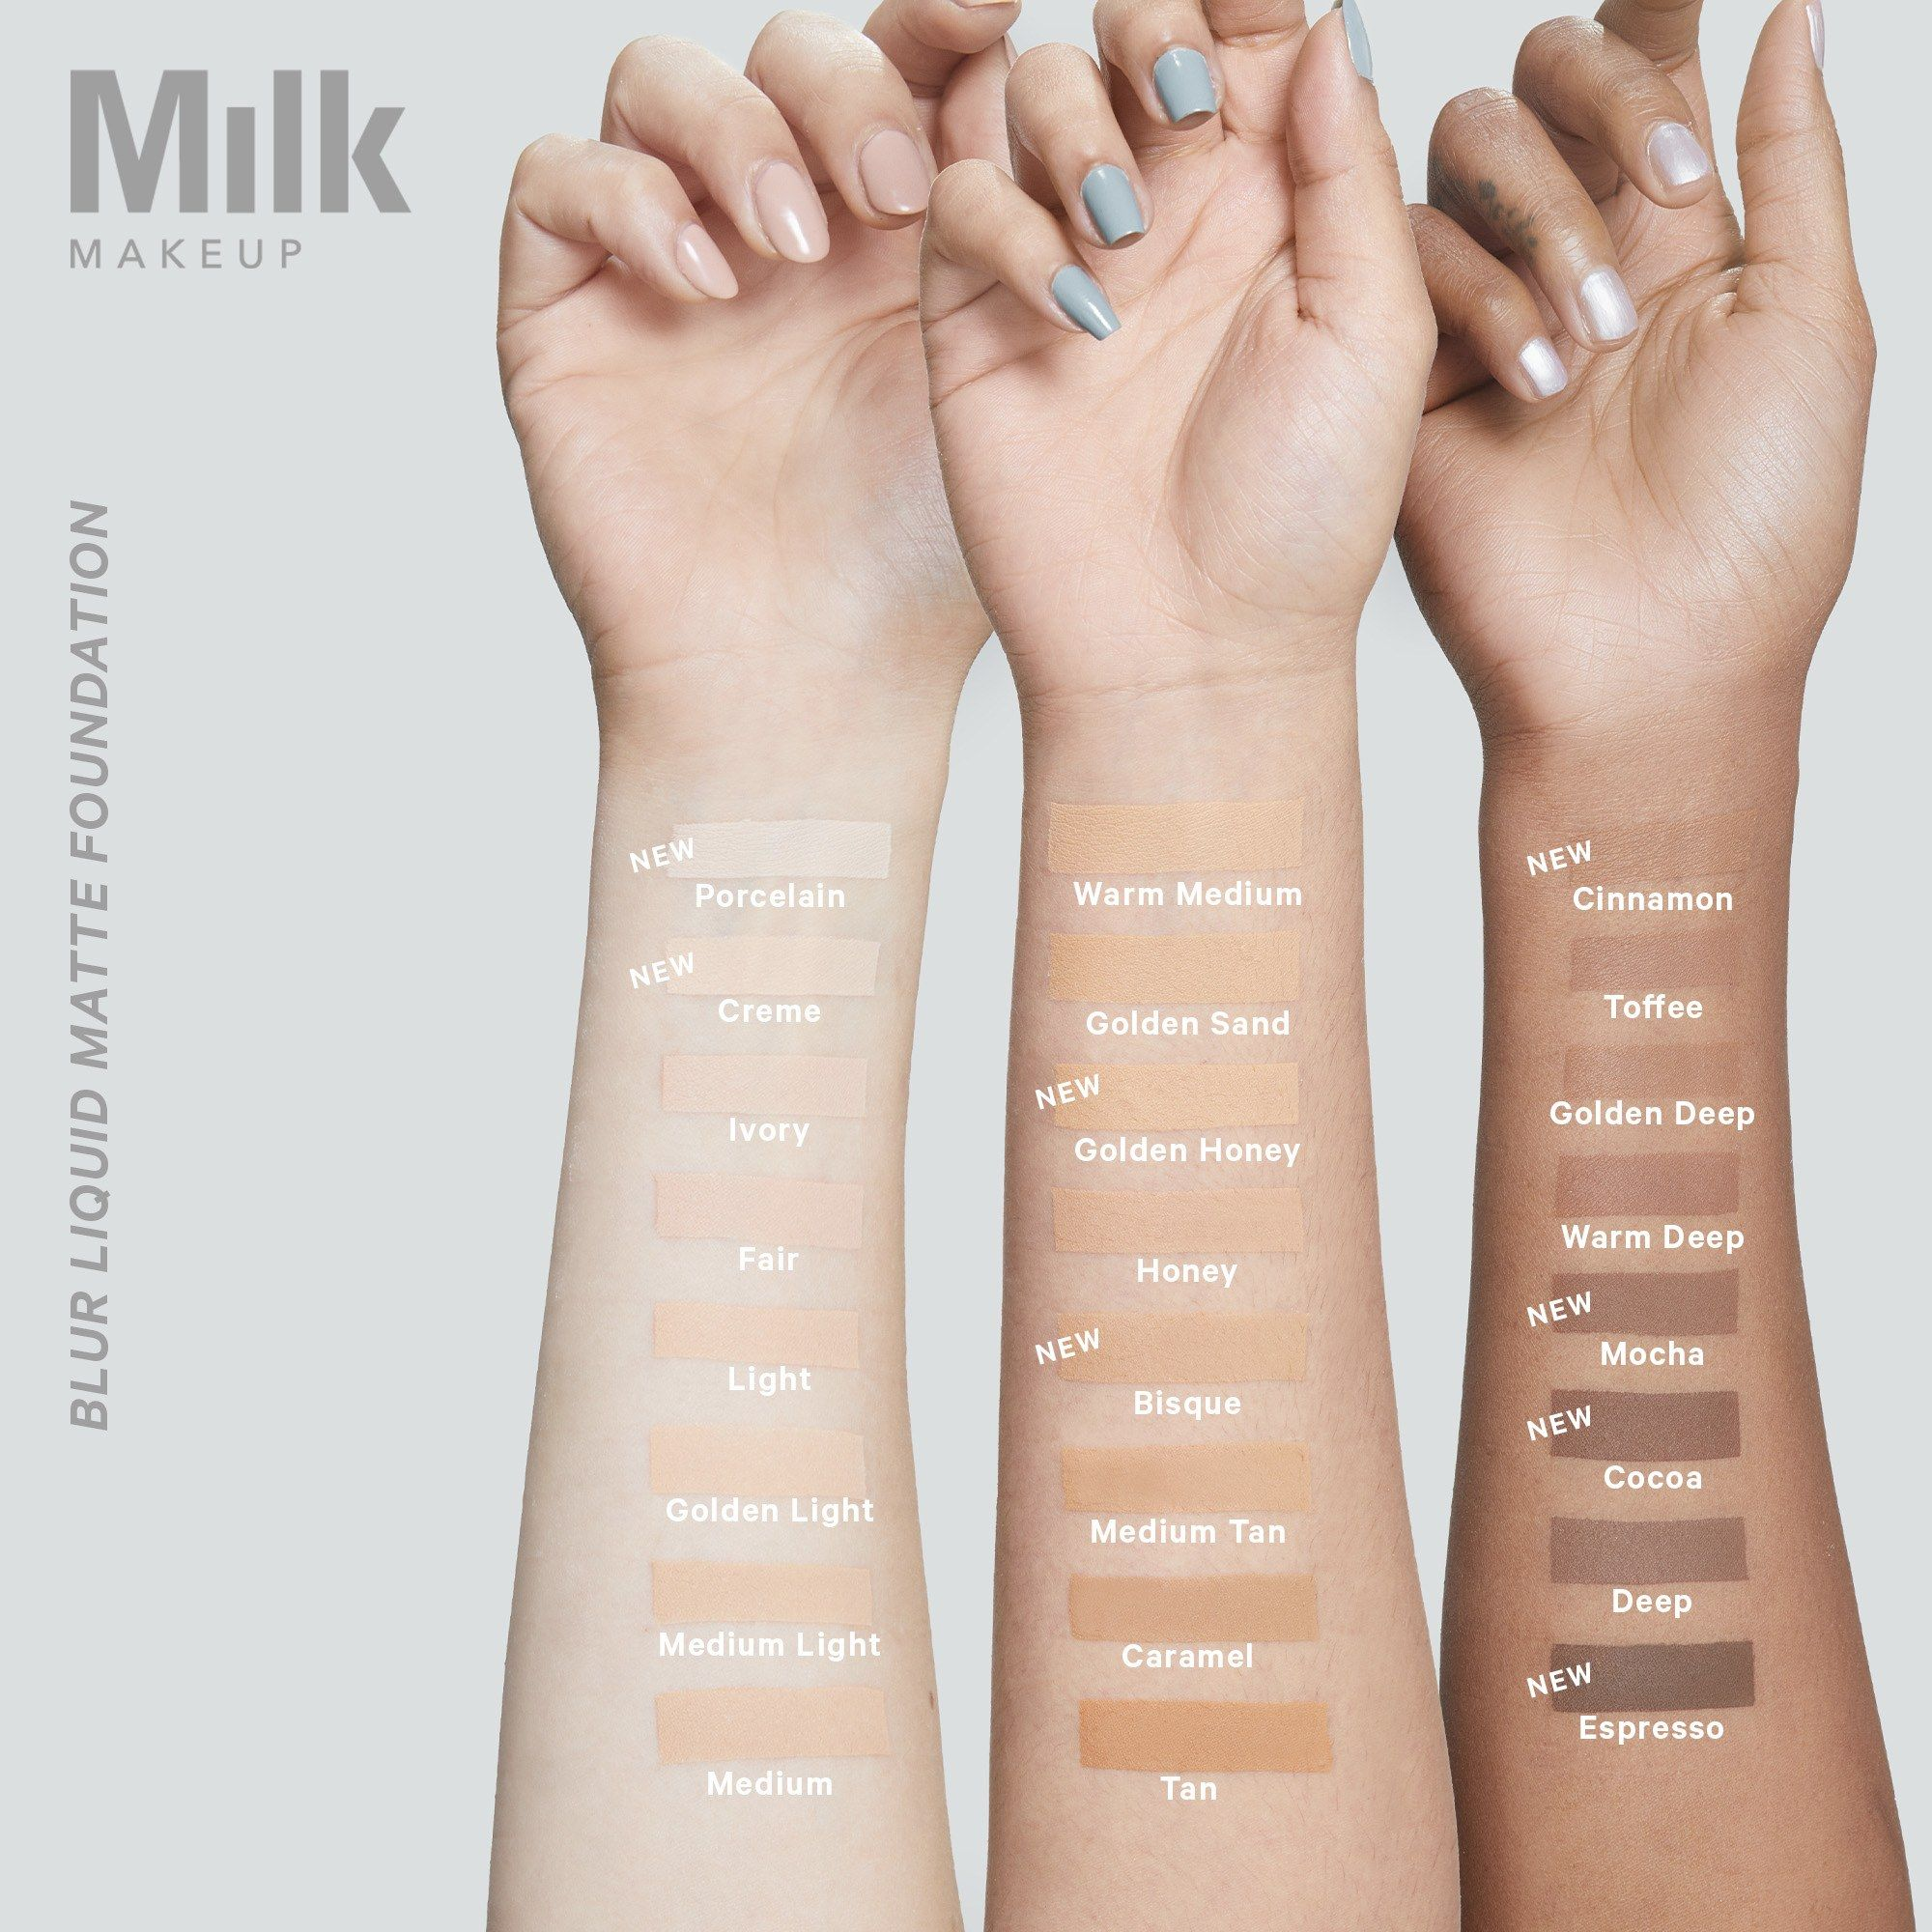 Milk Makeup Is Adding 16 New Blur Foundation and Flex